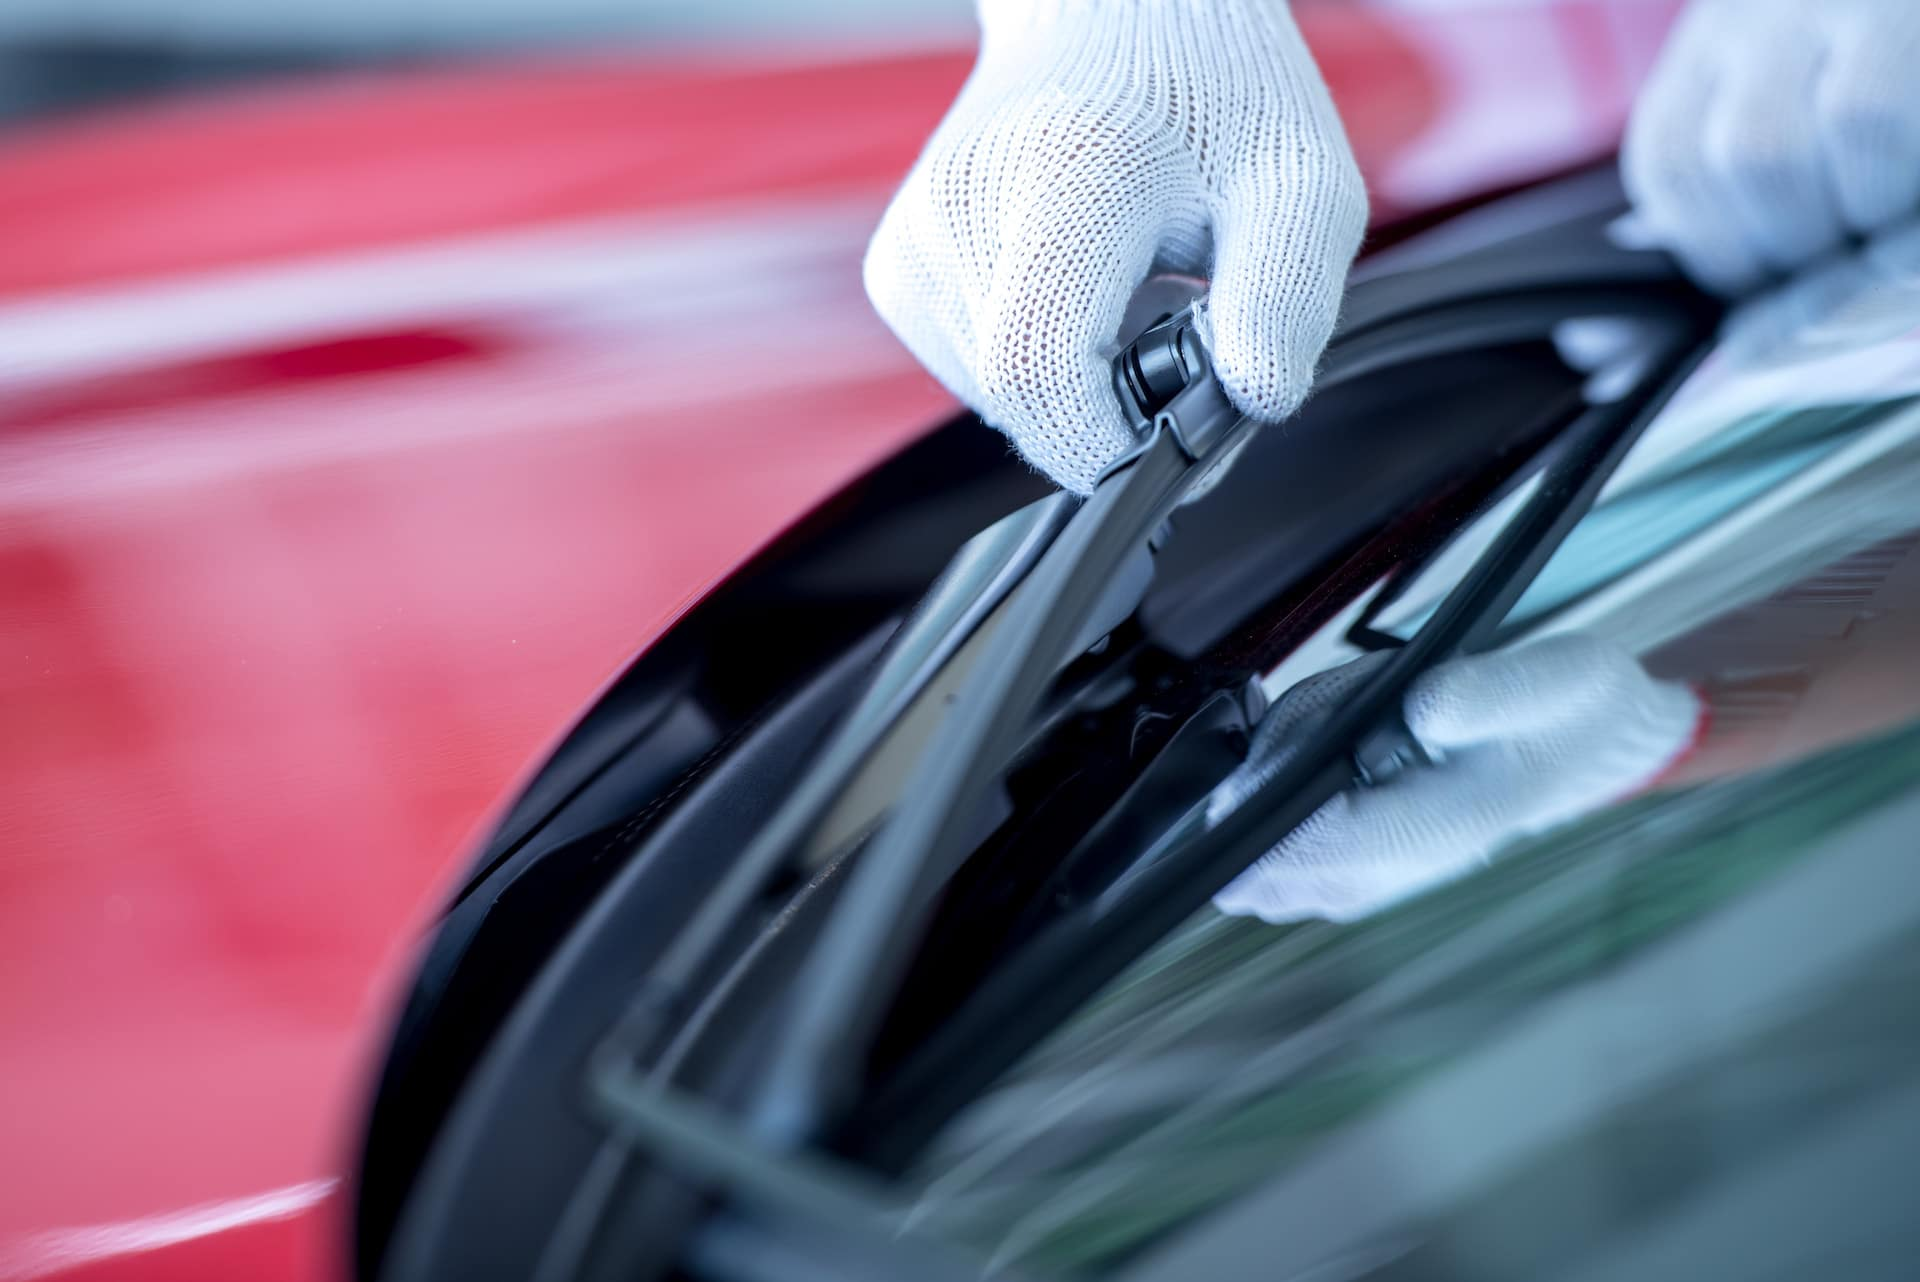 How to prepare your Toyota for the winter season at Halterman's Toyota in East Stroudsburg, PA | Service technician changing windshield wipers